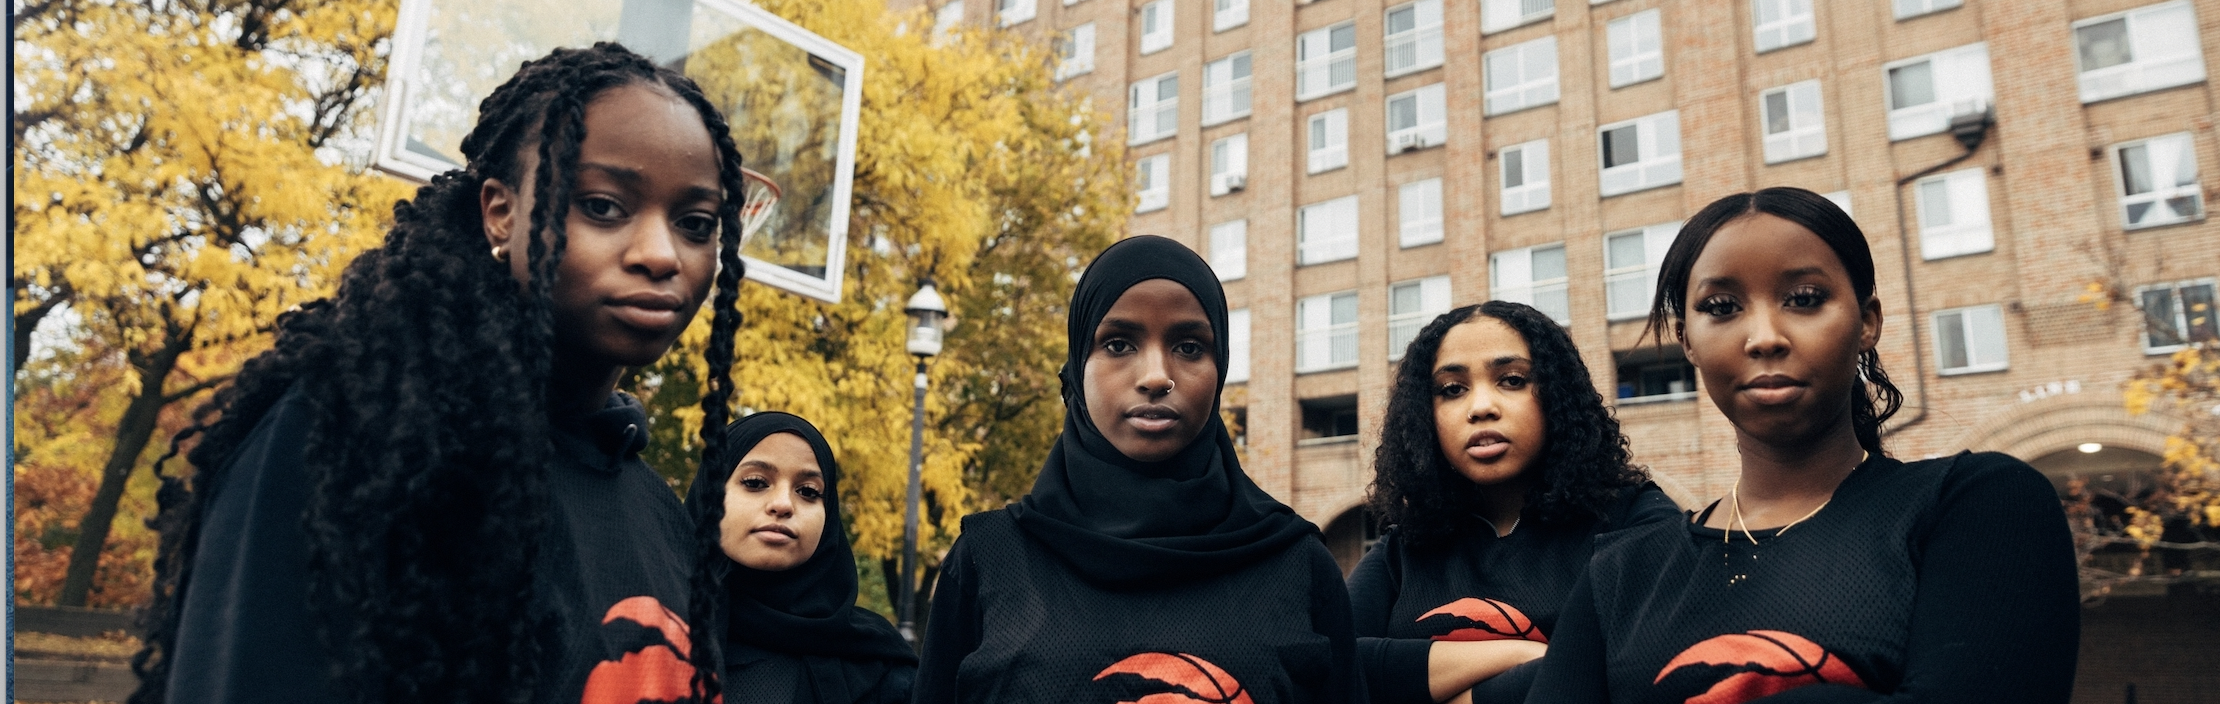 MLSE FOUNDATION LAUNCHES CAMPAIGN TO 'CHANGE THE GAME'